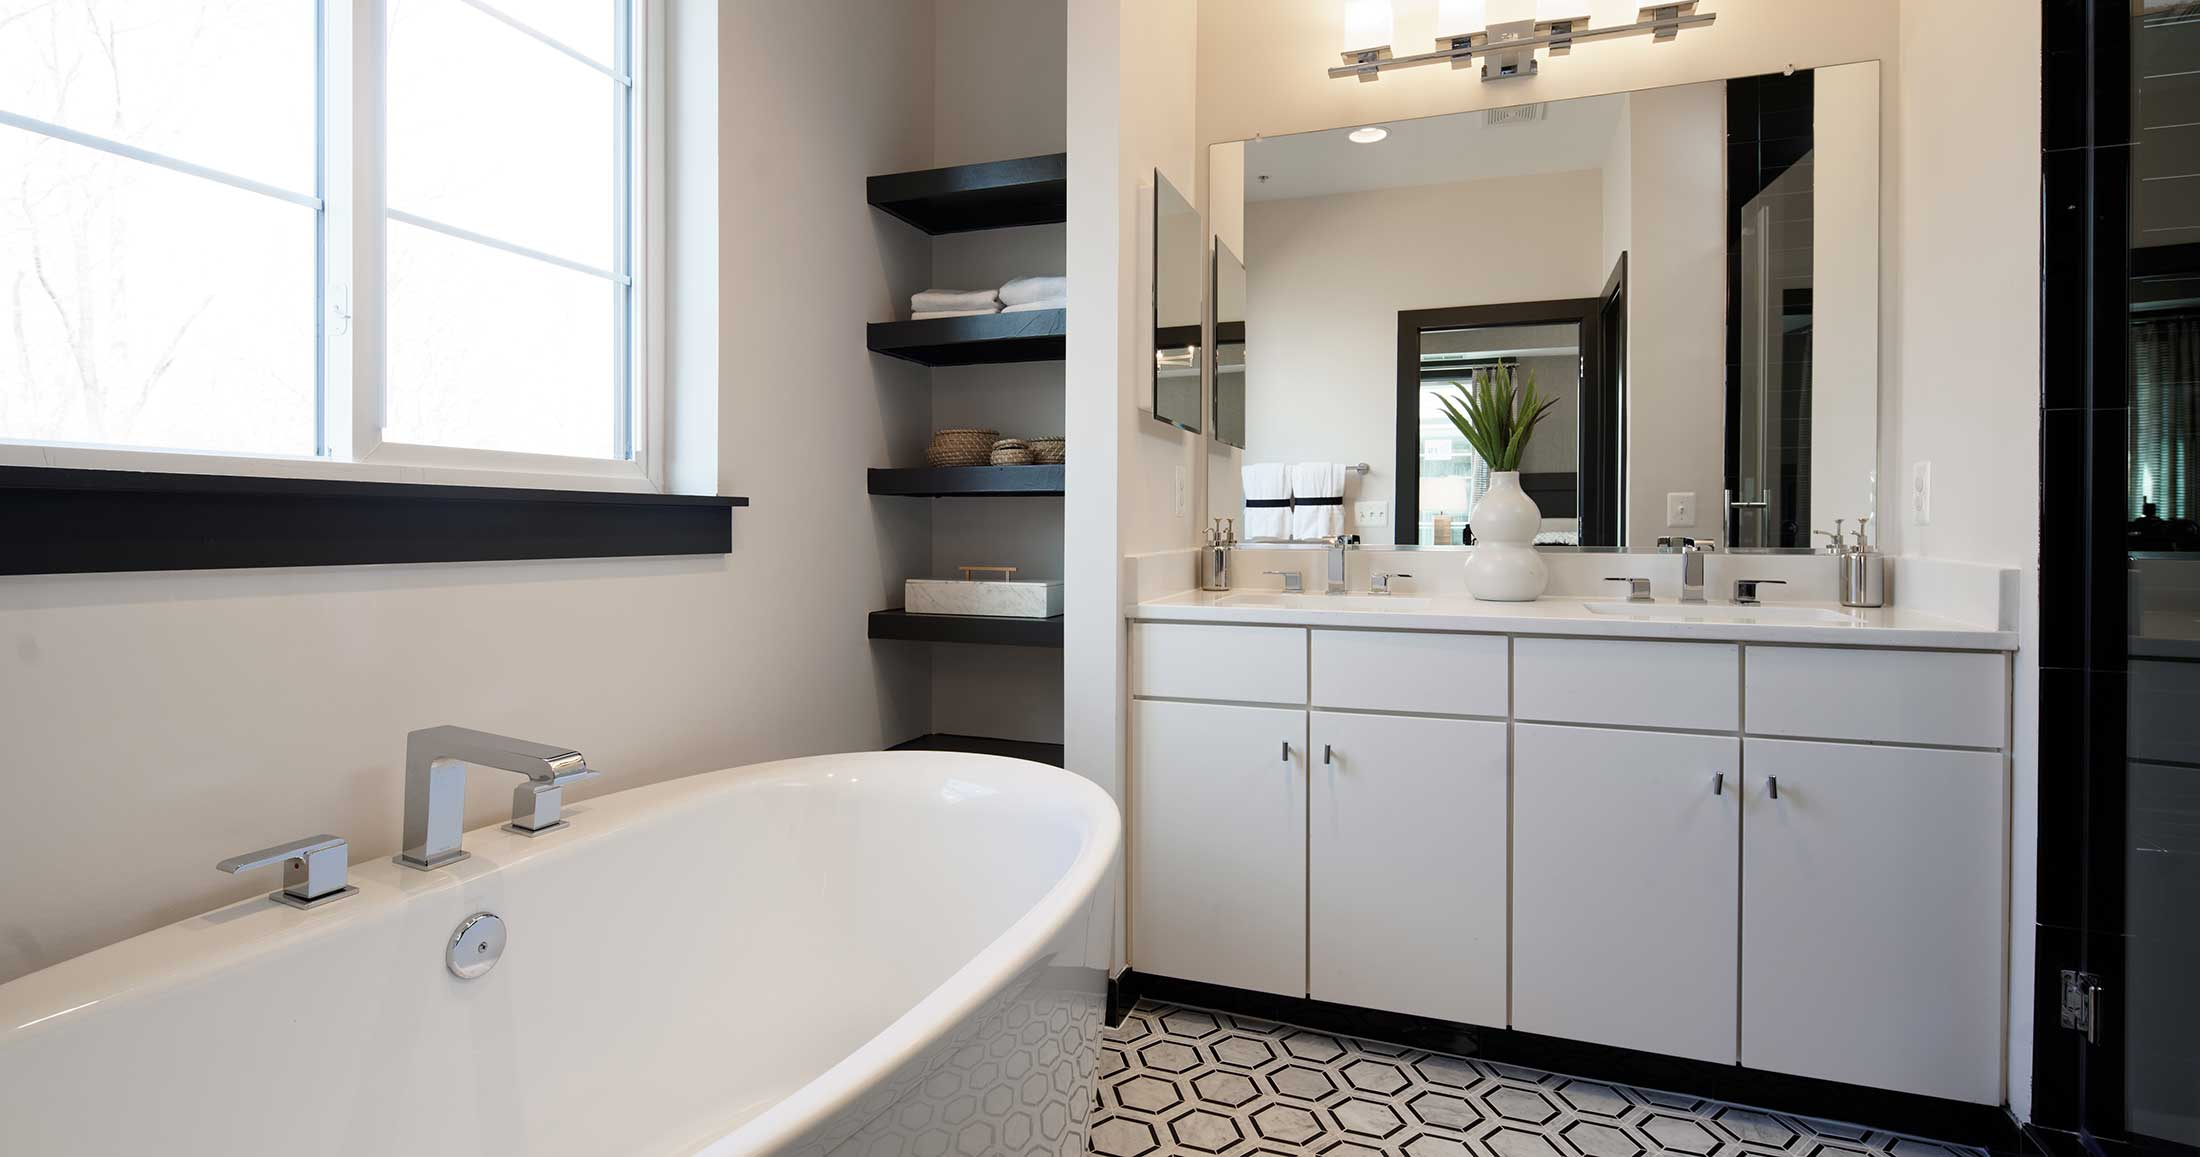 Bathroom, Townhomes in Chantilly VA